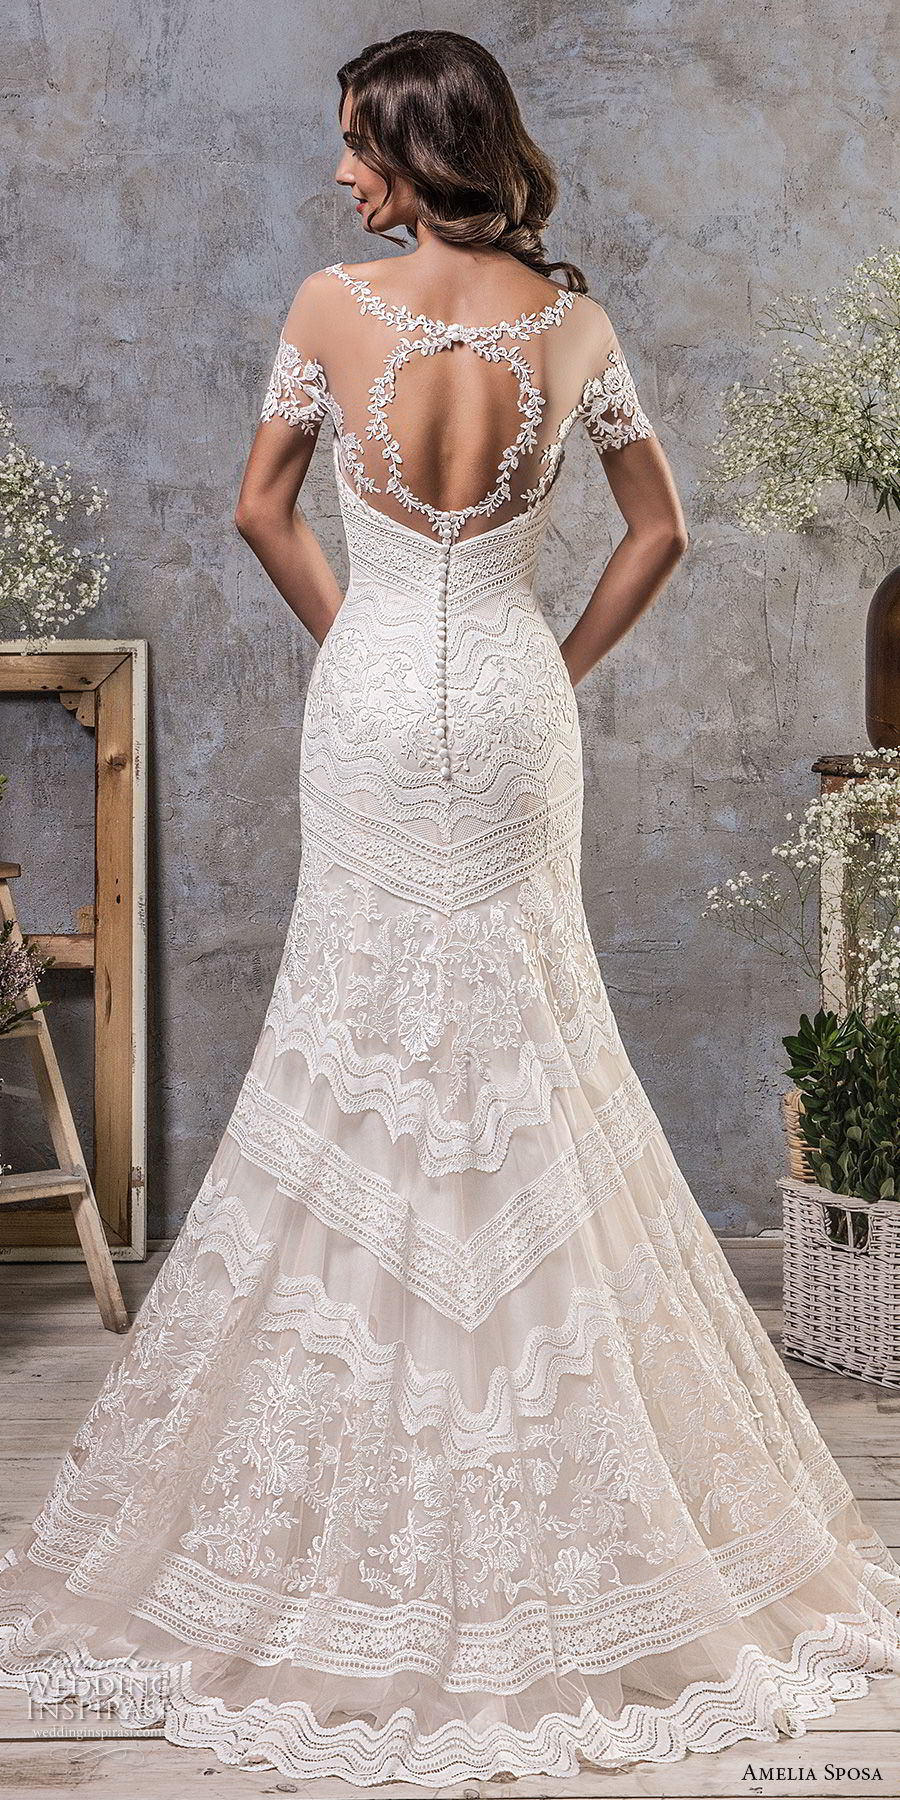 amelia sposa fall 2018 bridal short sleeves illusion boat neck semi sweetheart neckline full embellishment elegant trumpet wedding dress keyhole back sweep train (3) bv